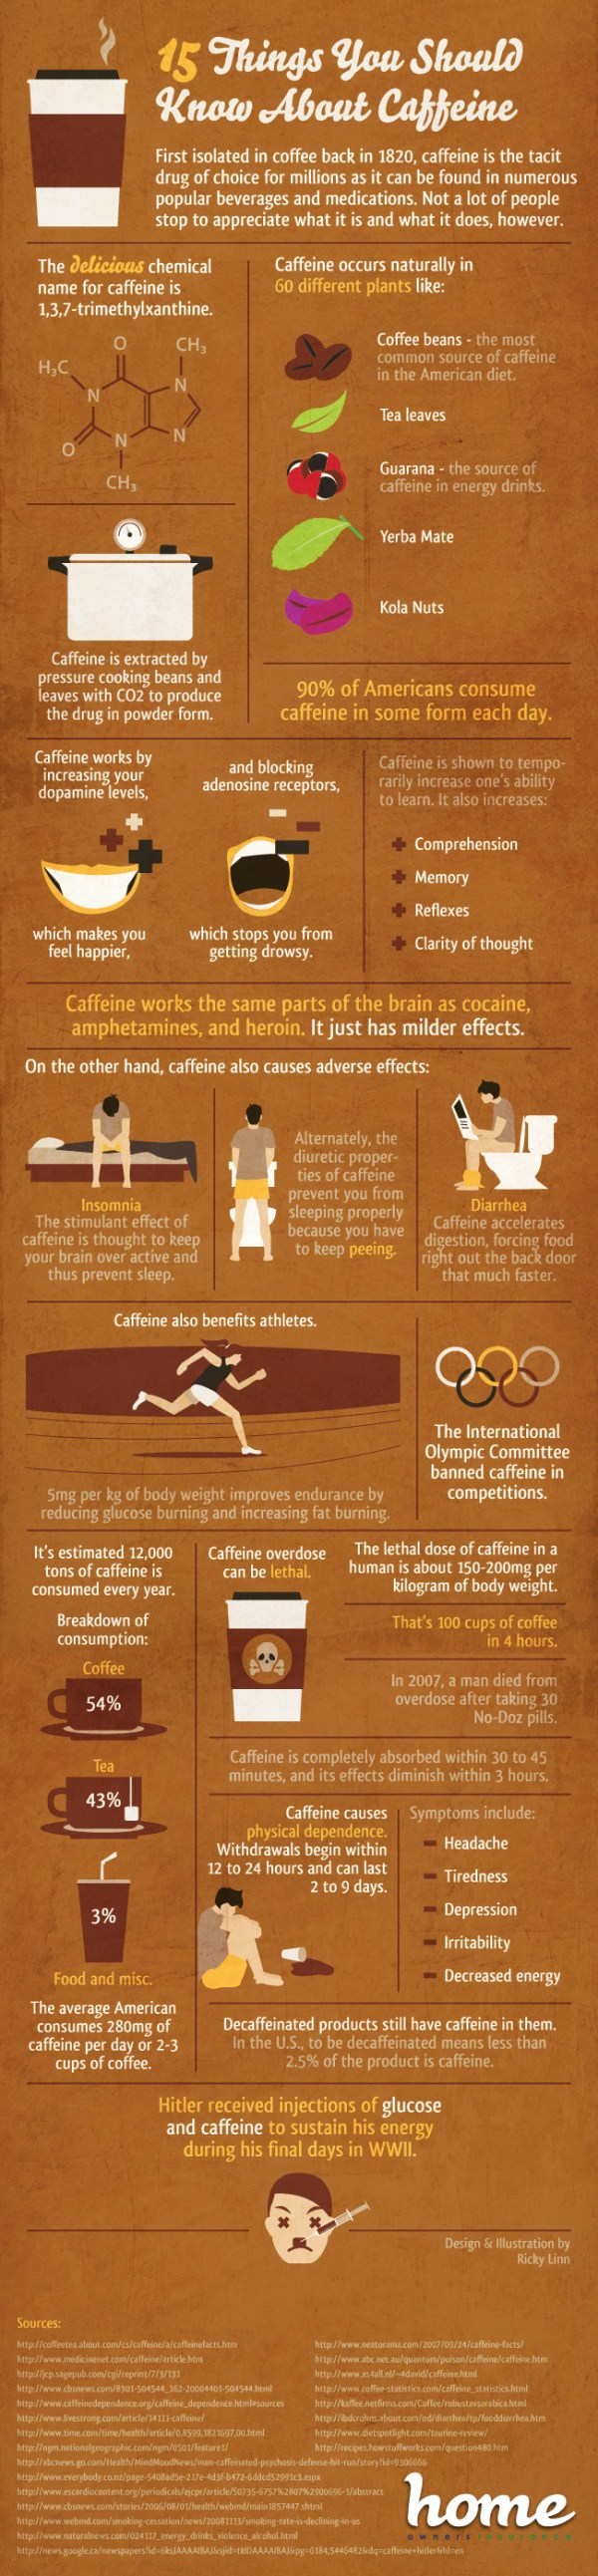 Cool facts about caffeine